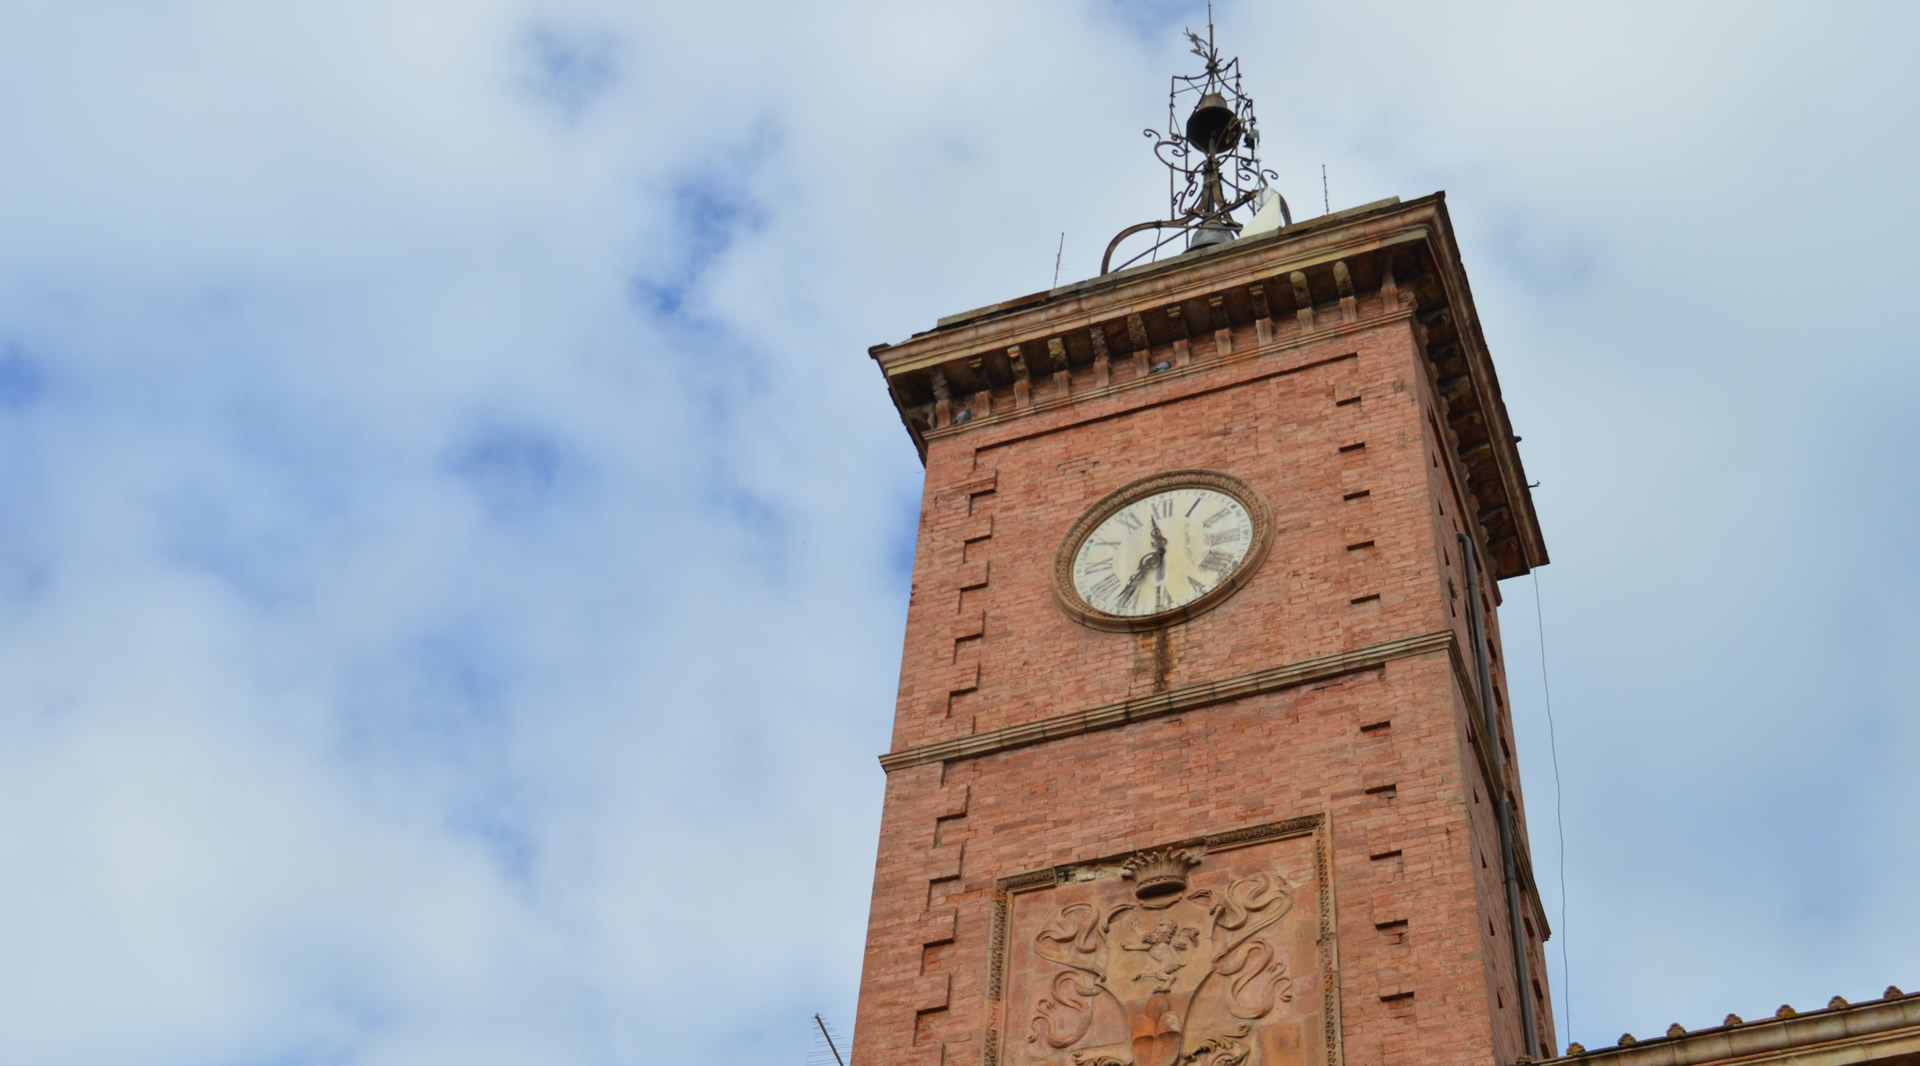 The Tower of the clock - Monteleone di Orvieto